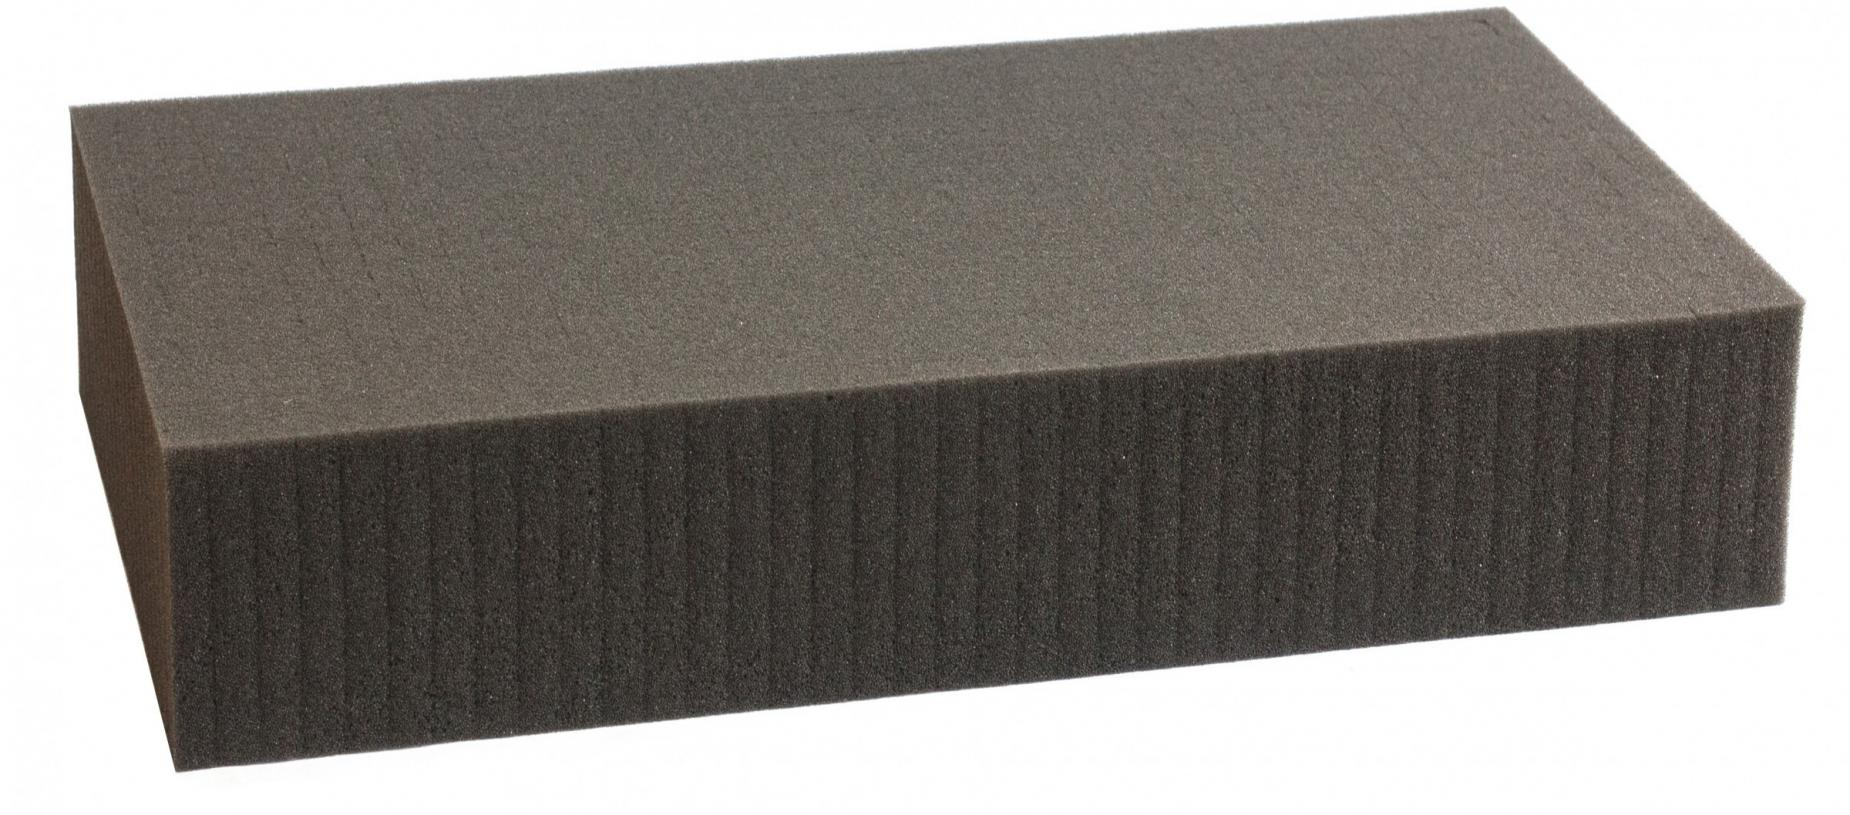 600 mm x 400 mm x 100 mm - Raster 15 mm - Pick and Pluck / Pre-Cubed foam tray